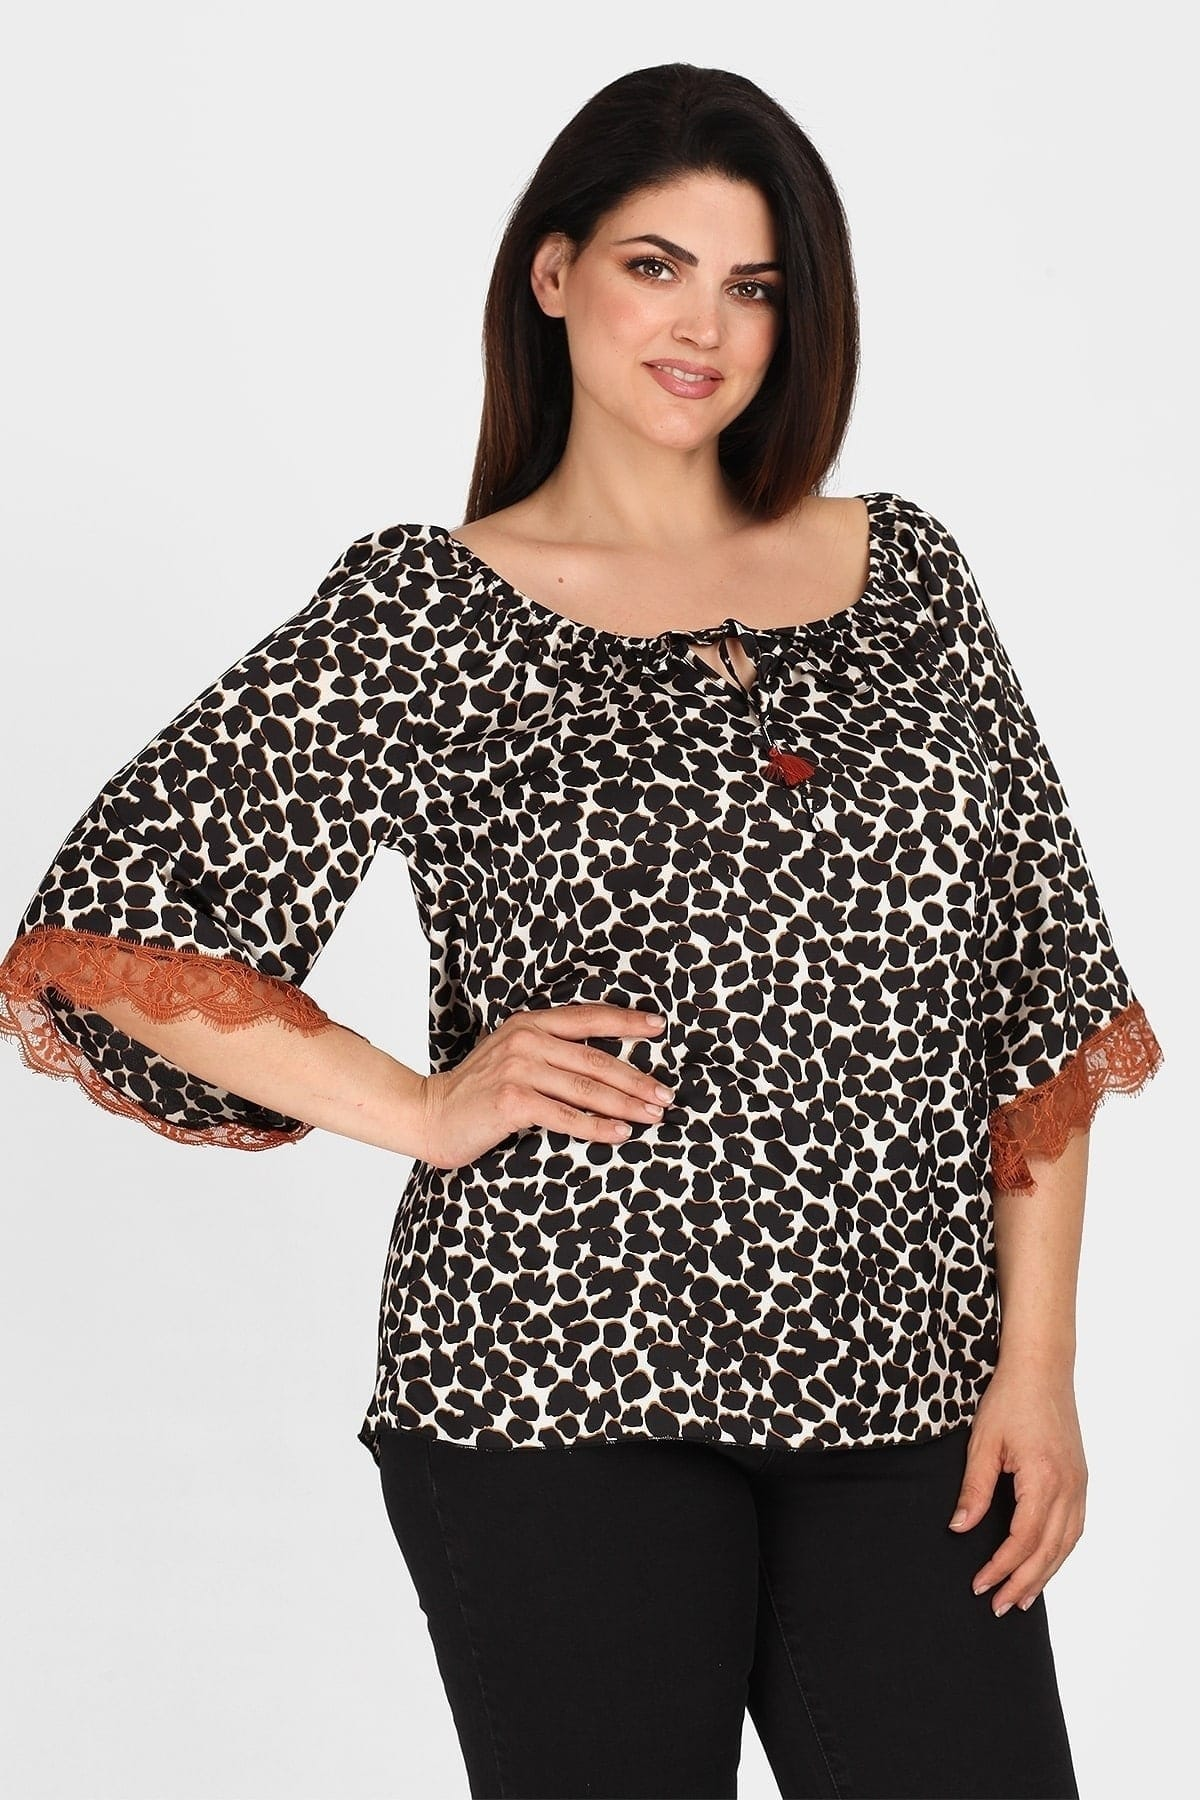 Leopard top with lace on the sleeve